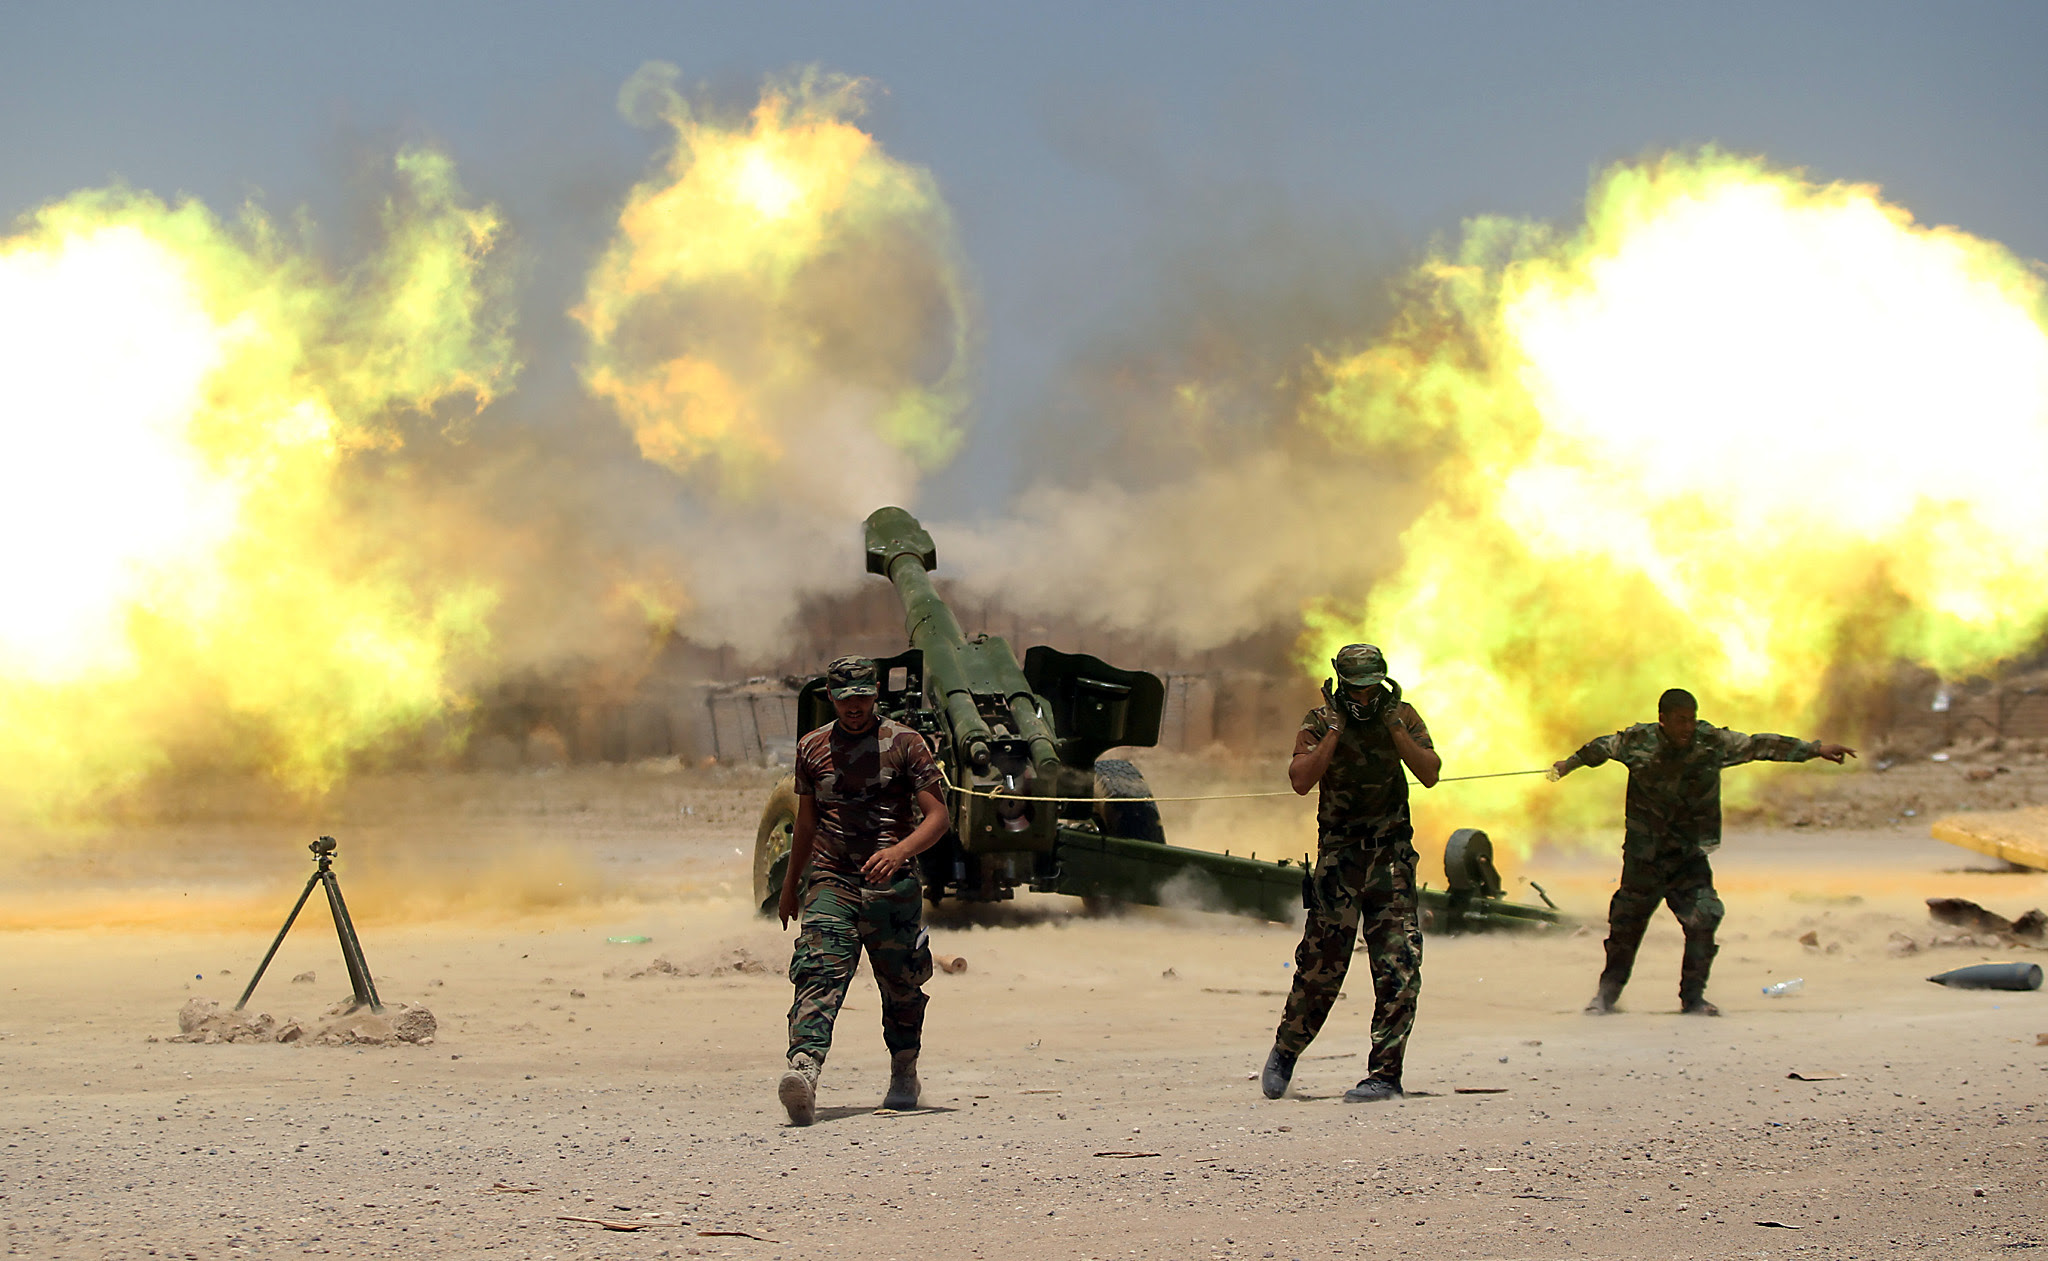 Shi'ite fighters with Iraqi security forces fire artillery during clashes with Islamic State militants near Falluja...Shi'ite fighters with Iraqi security forces fire artillery during clashes with Islamic State militants near Falluja, Iraq, May 29, 2016.  REUTERS/Alaa Al-Marjani